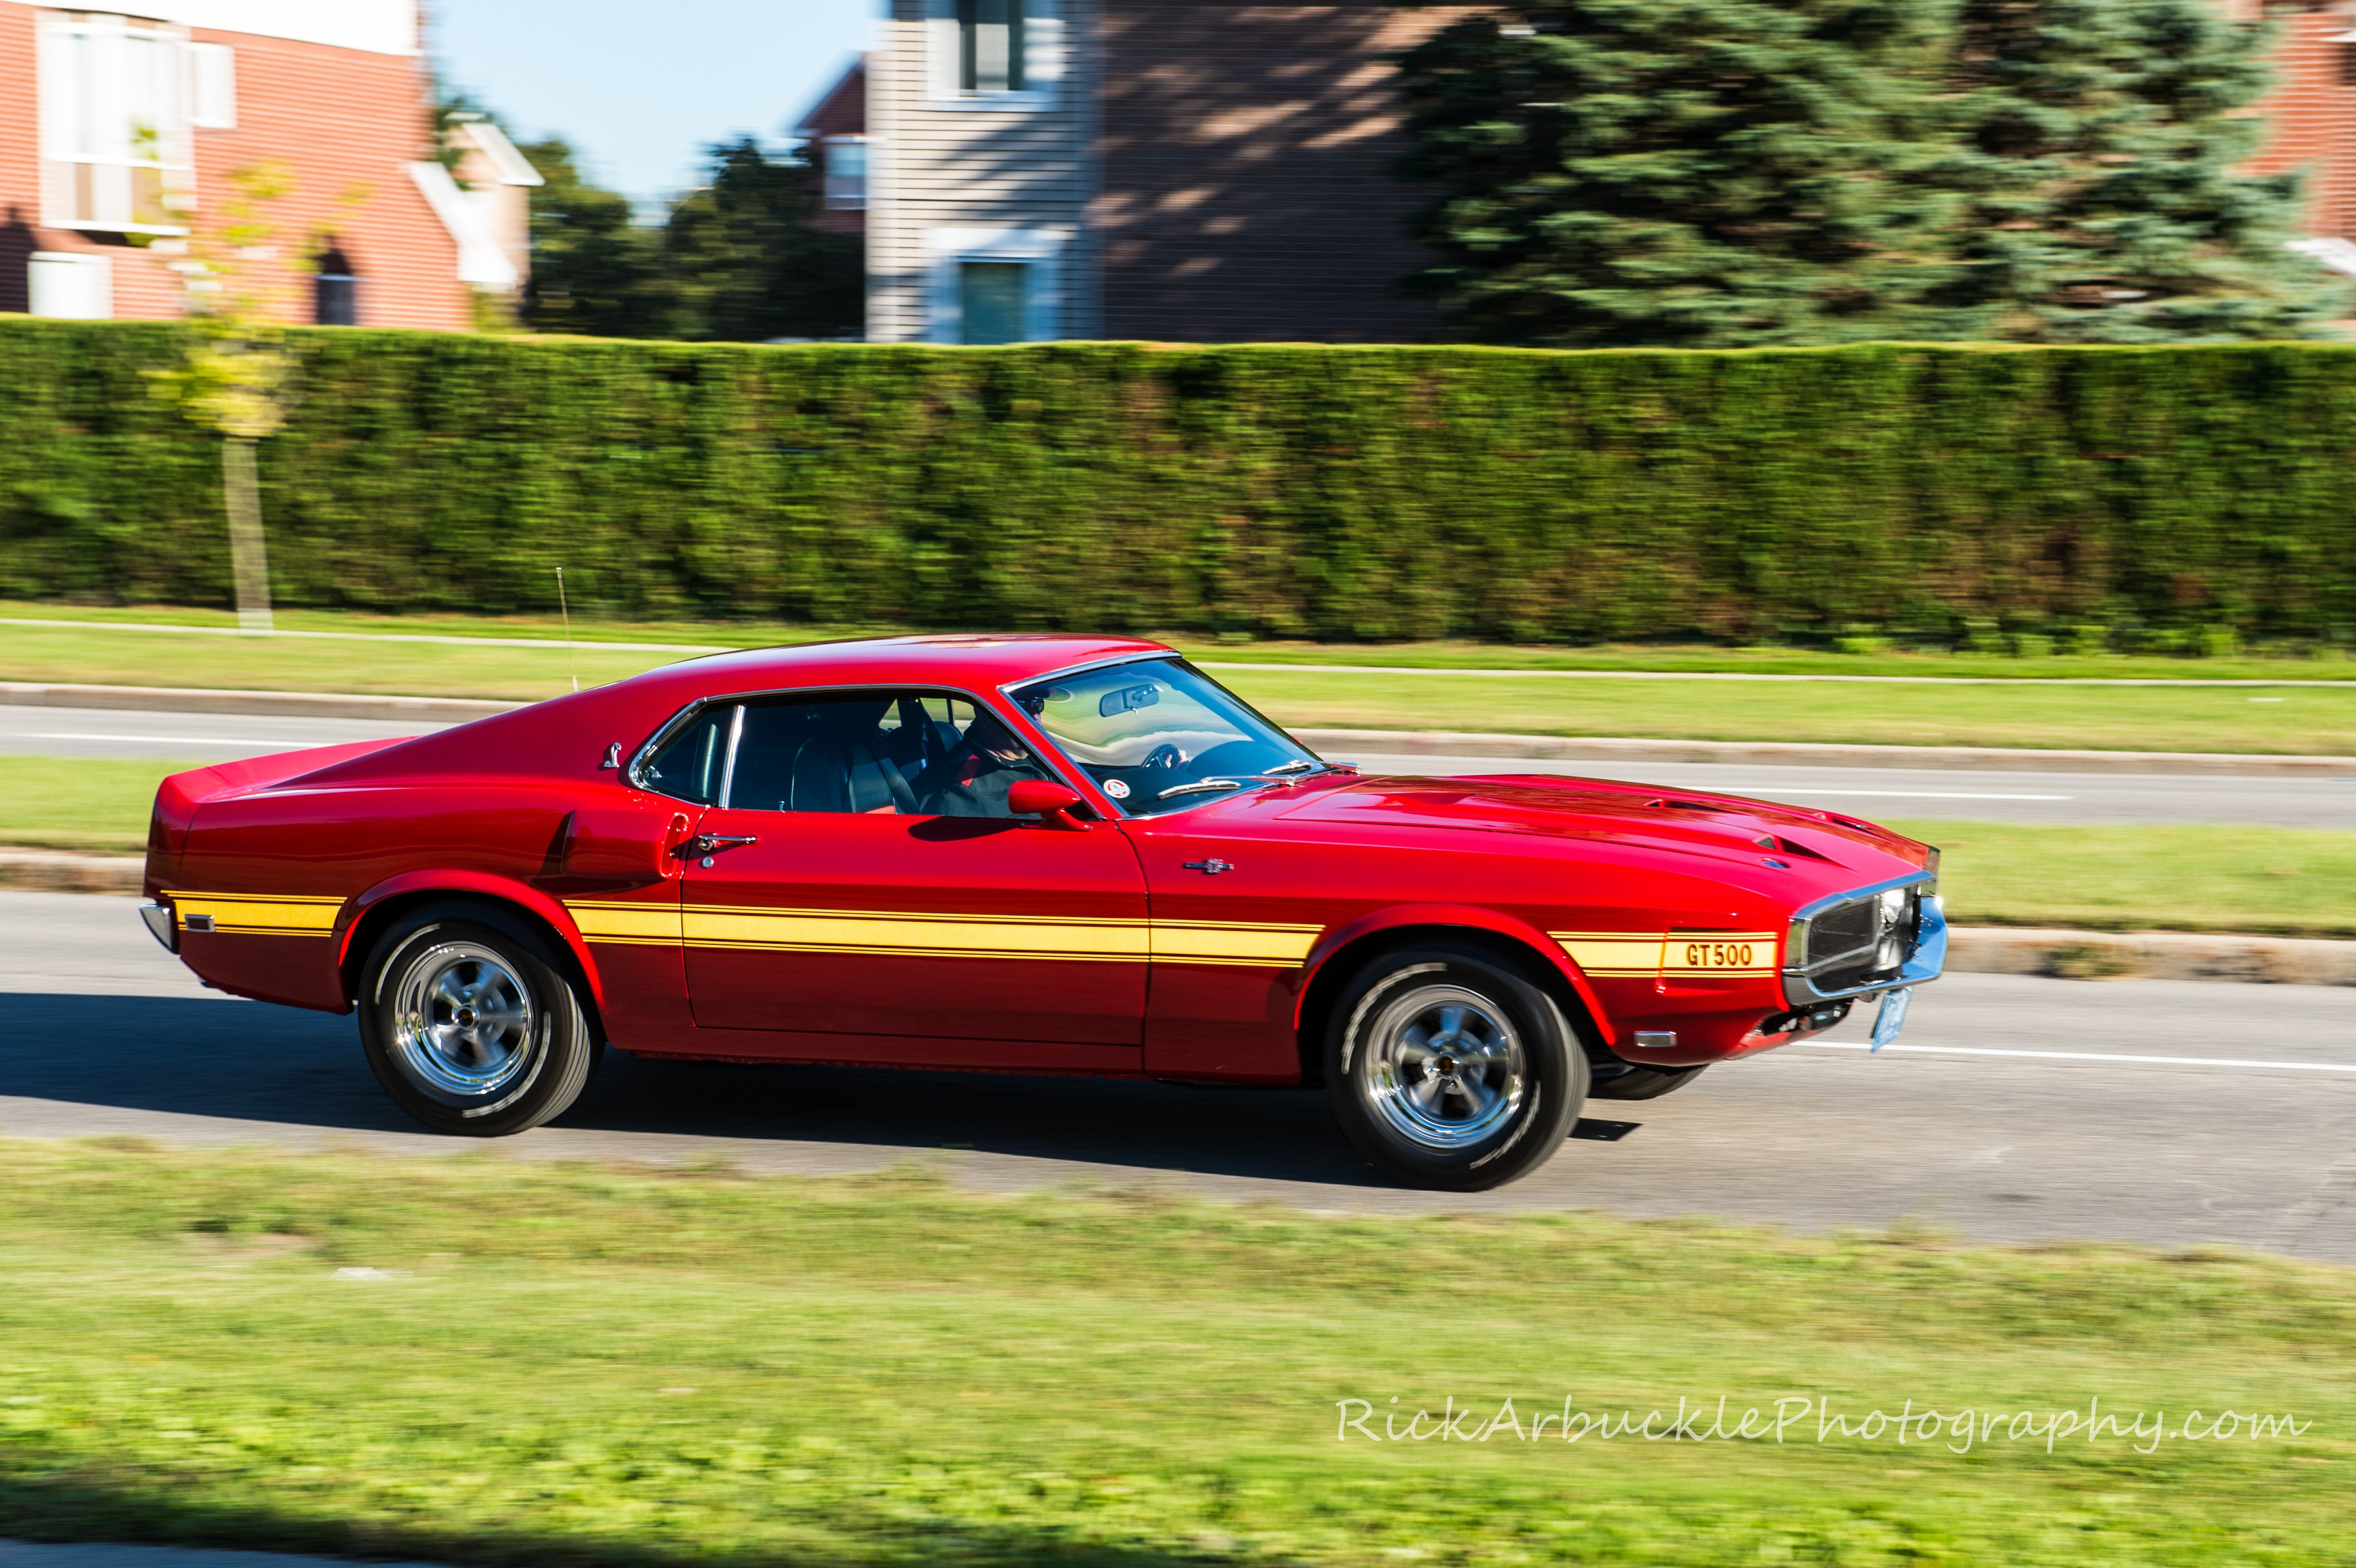 1969 Shelby GT500 SCJ Convertible - Extremely Rare and Coveted ...